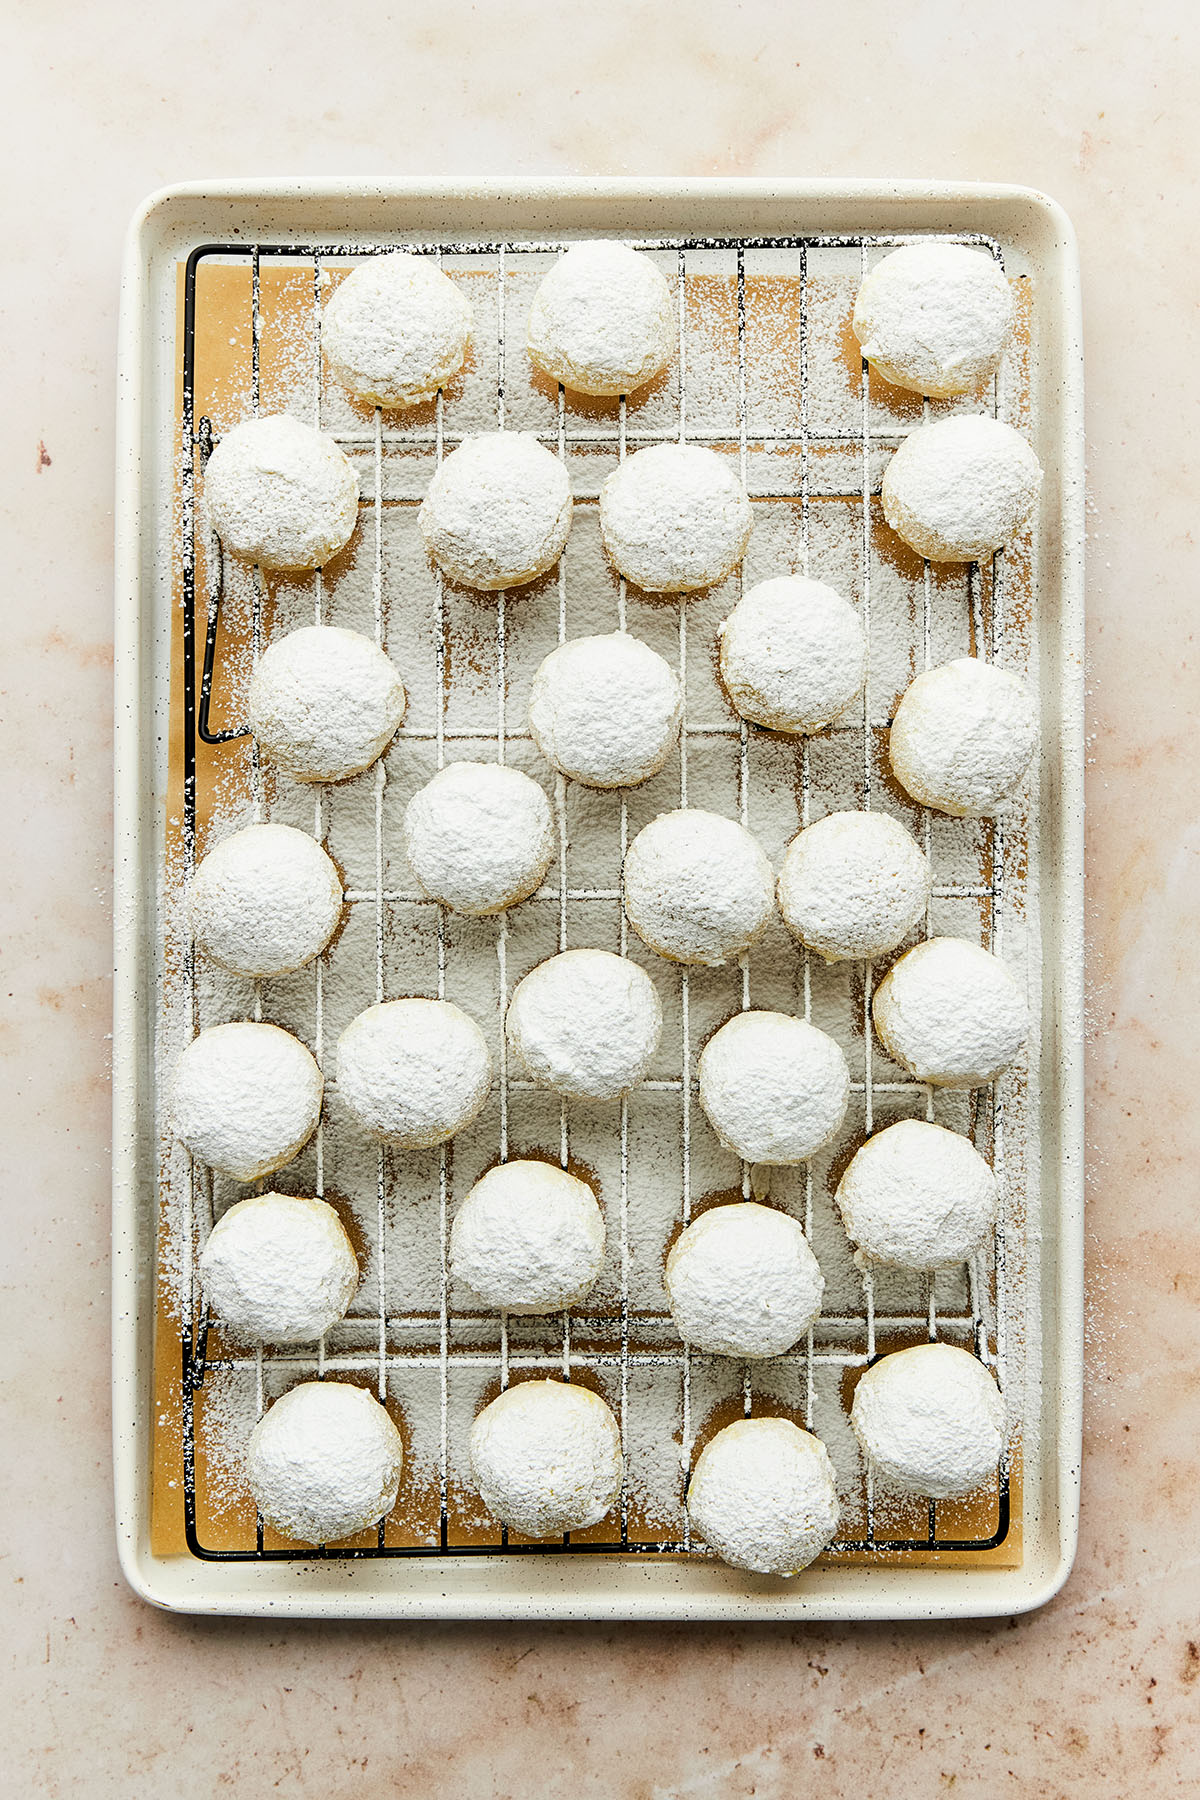 Overhead image of a tray of small round cookies coated with powdered sugar.